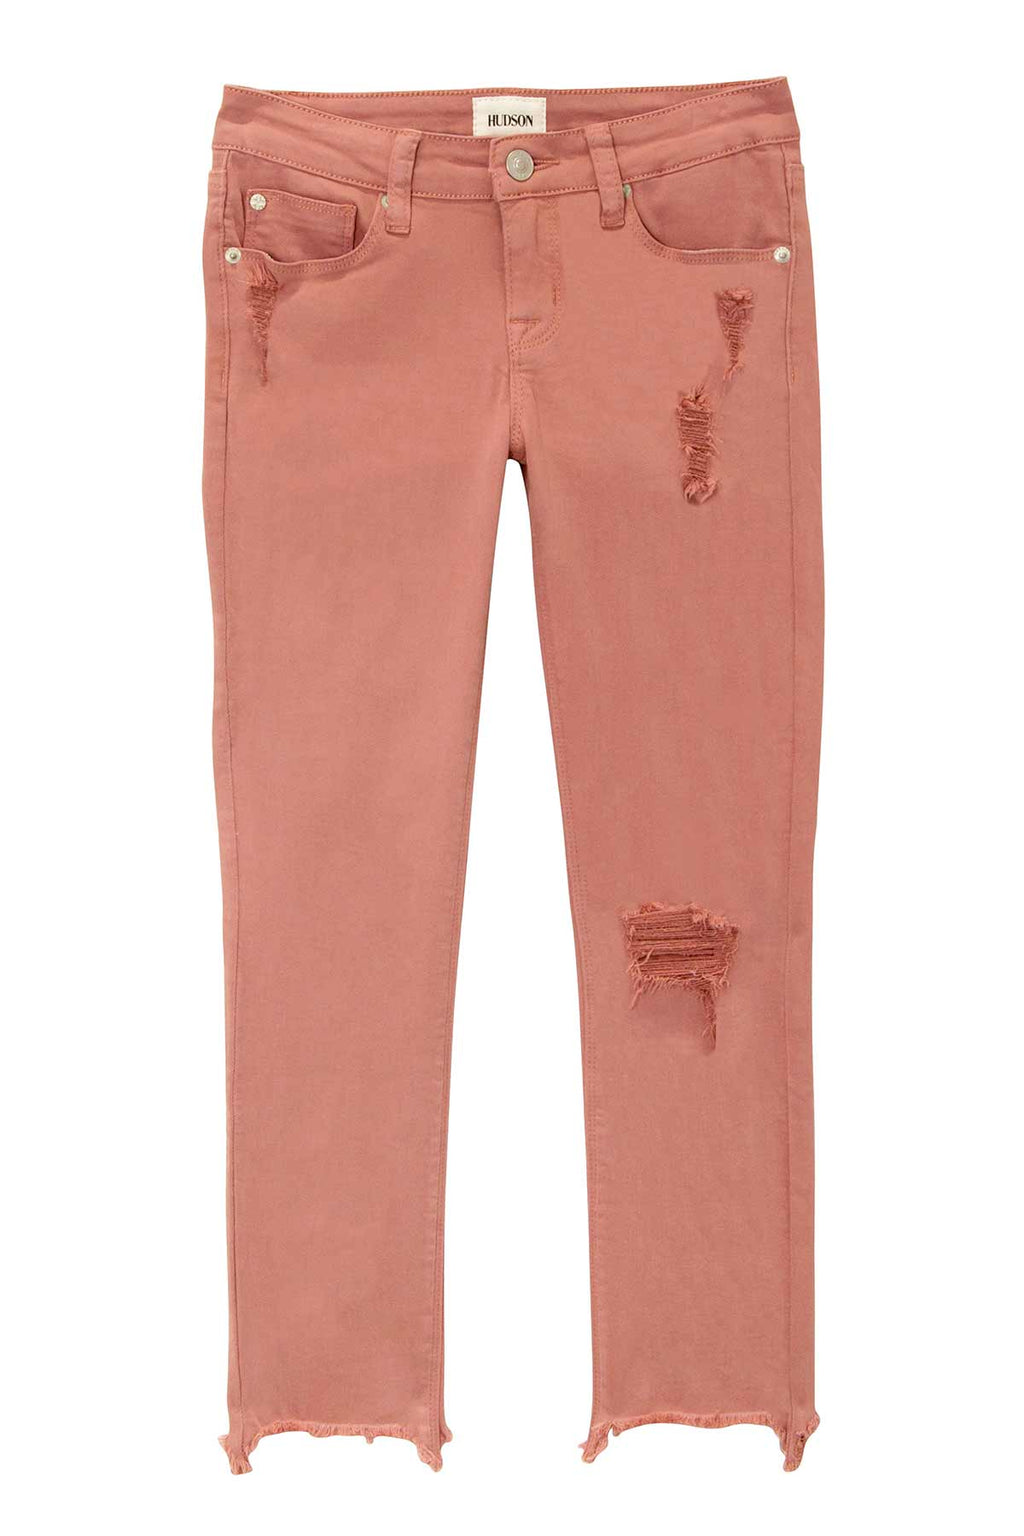 Little Girls Wren Skinny Jean, Sizes 2T-6X - hudsonjeans